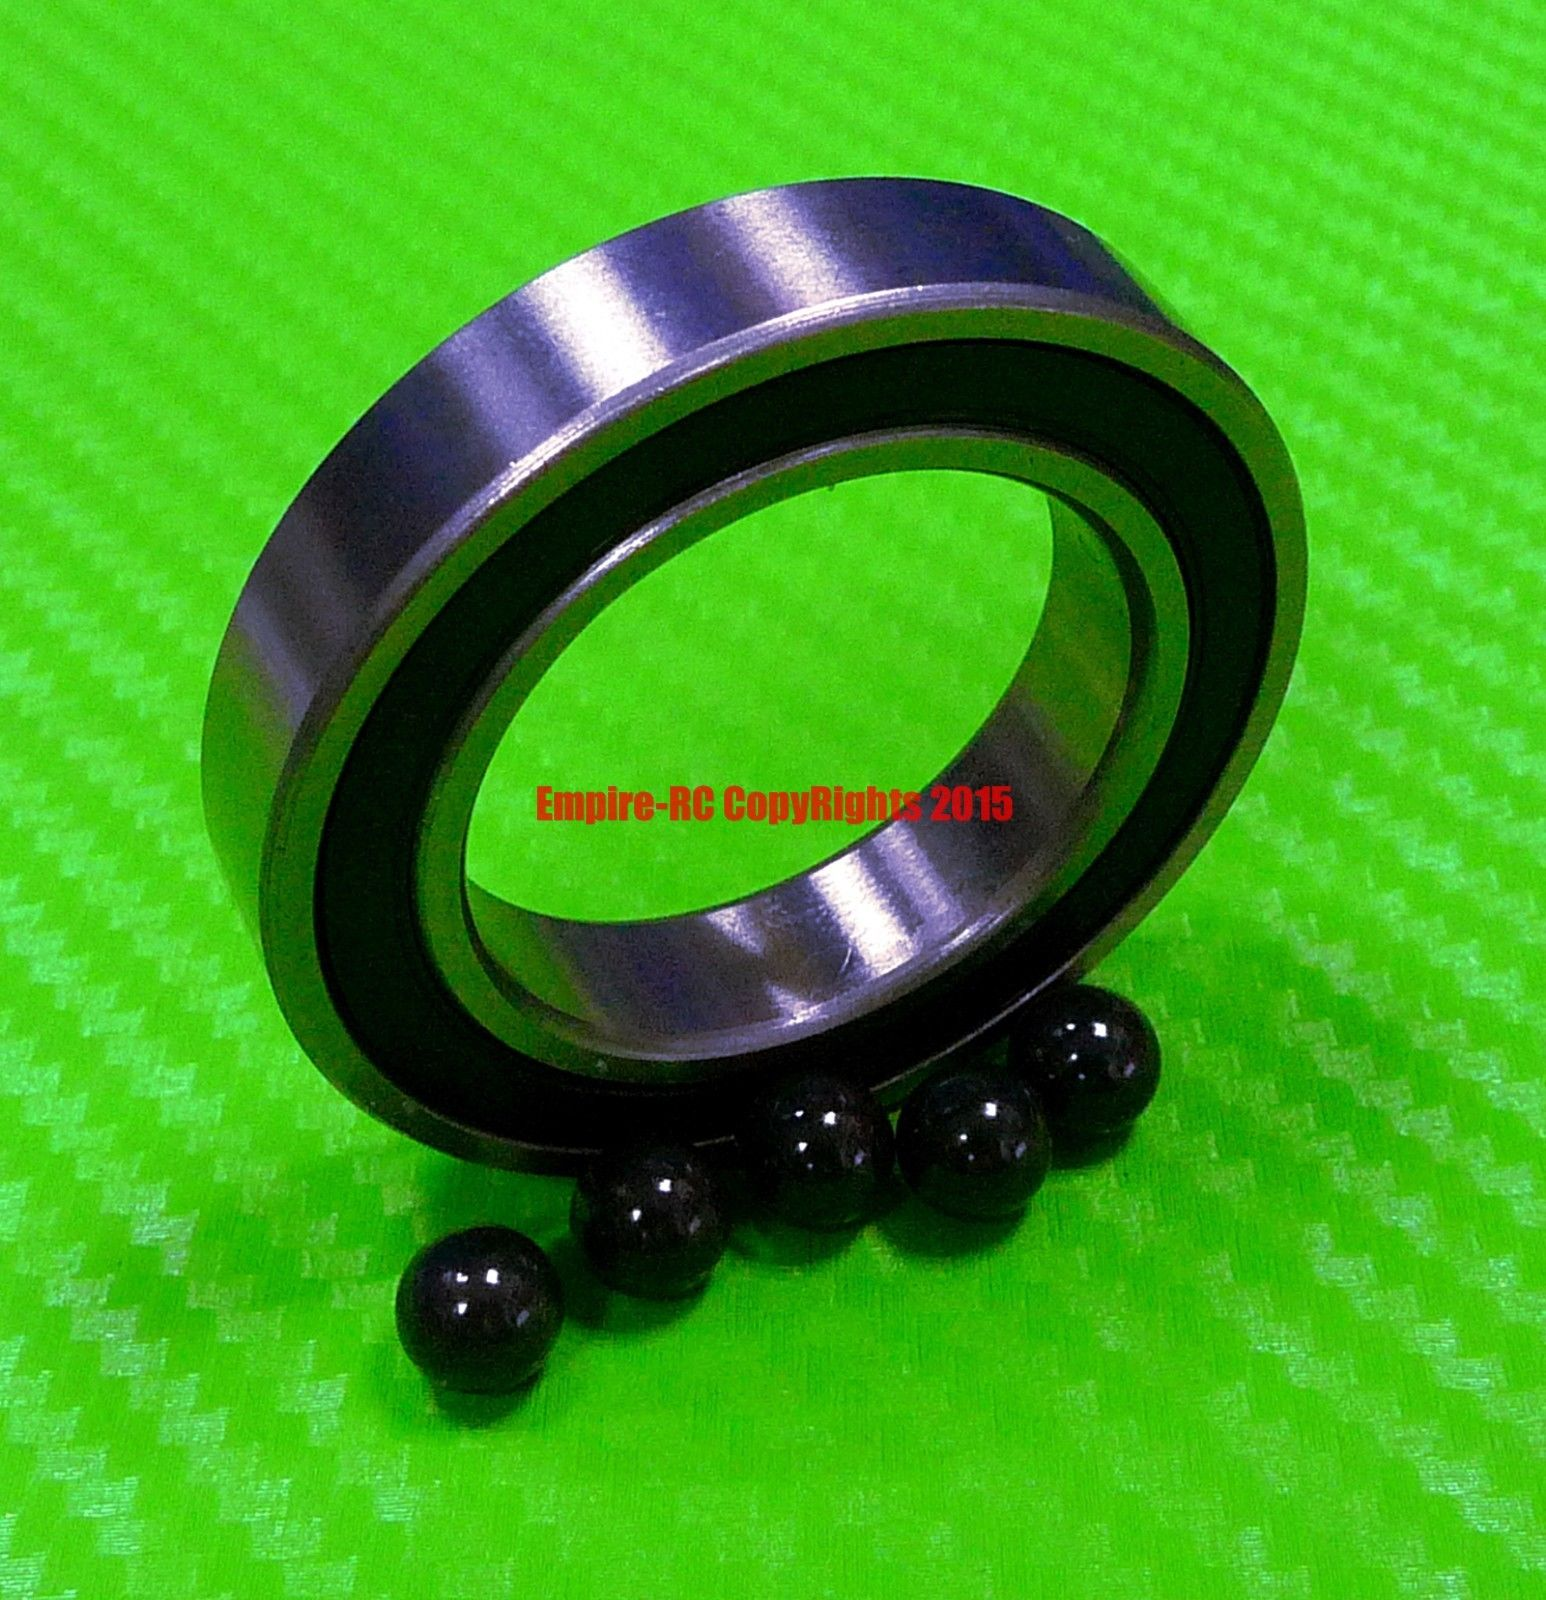 high temperature [QTY 1] (25x37x7 mm) S6805-2RS Stainless HYBRID CERAMIC Ball Bearings BLK 6805RS